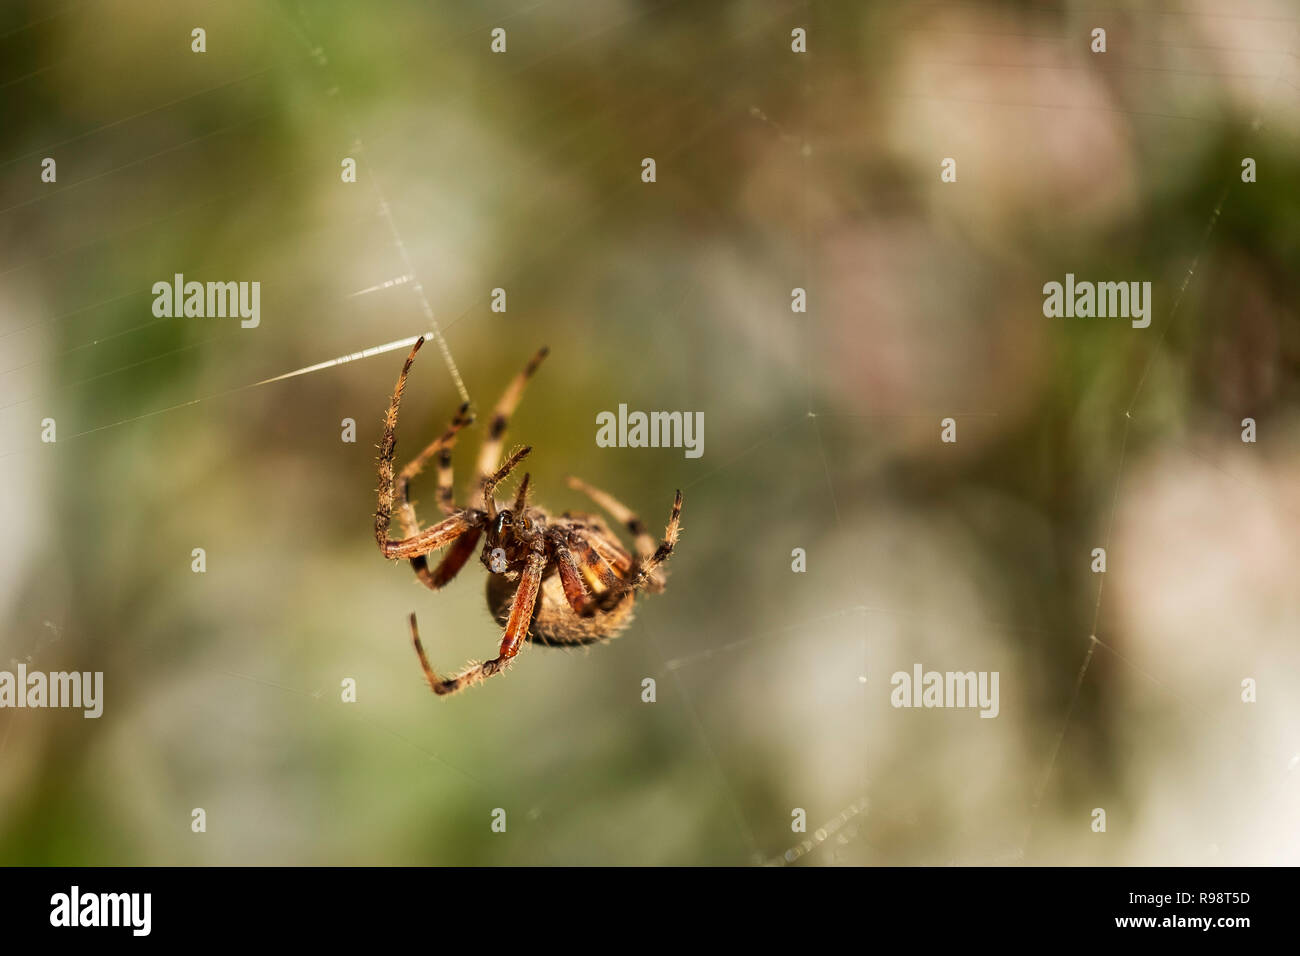 """Orb Weaver, Araneus cavaticus, or Charlotte A. Cavatica, as in """"Charlotte's Web"""" spinning a web in late summer. Wichita, Kansas, USA. - Stock Image"""